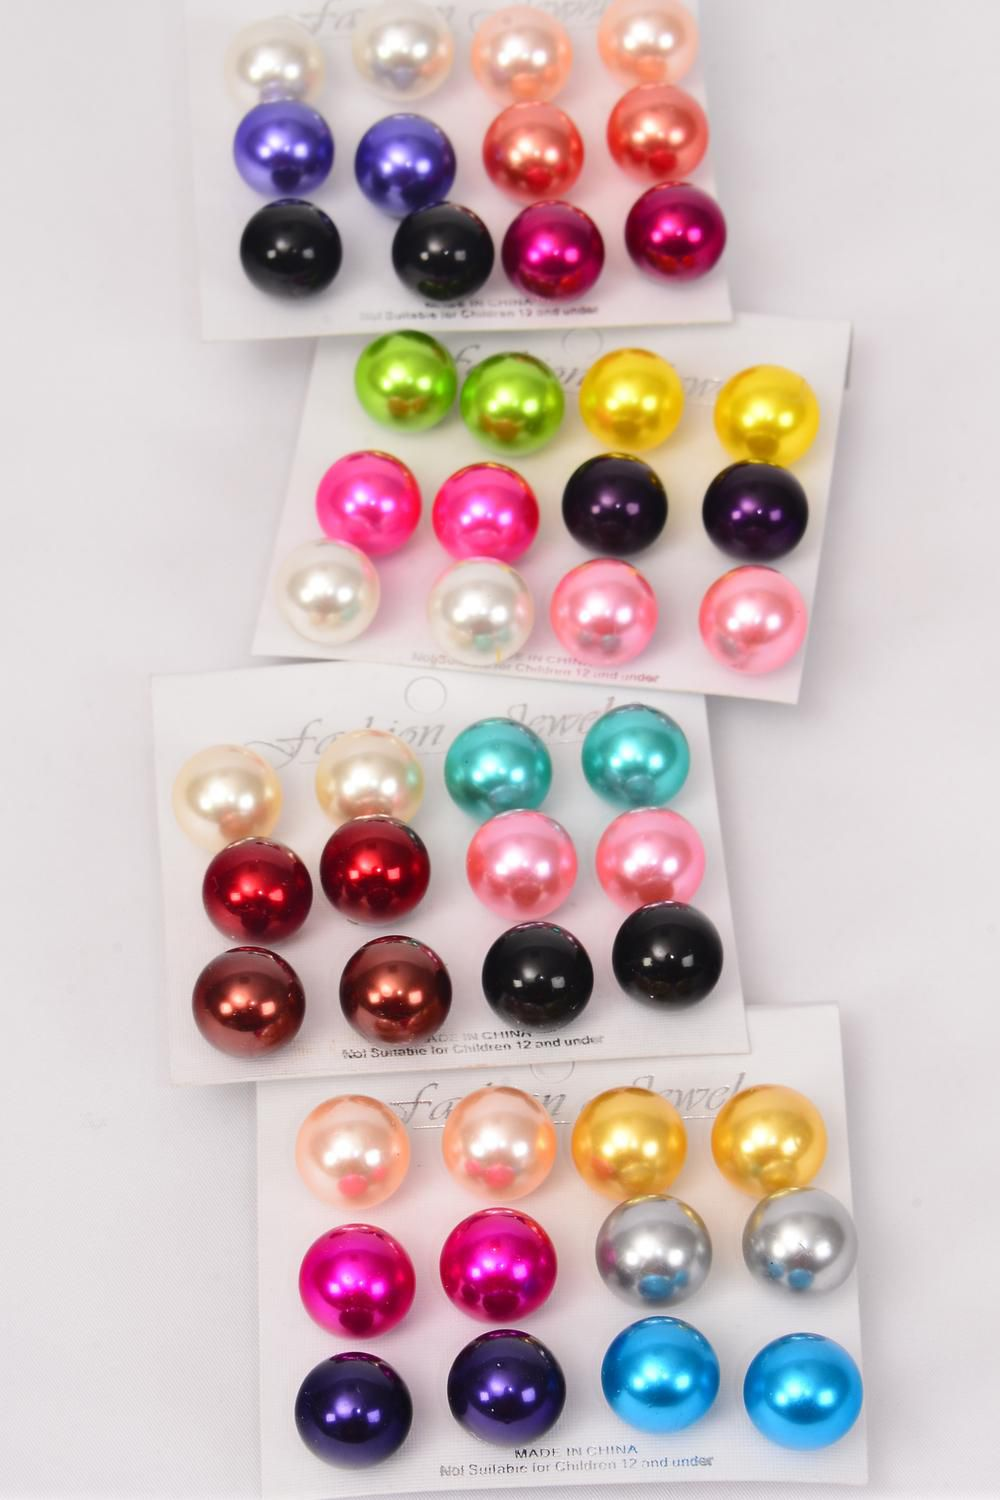 Earrings Multi 6 Pair 14 mm ABS Pearls/DZ **Multi** Post,Size-14 mm,3 of each Color Asst,,Earring Card & OPP Bag & UPC Code